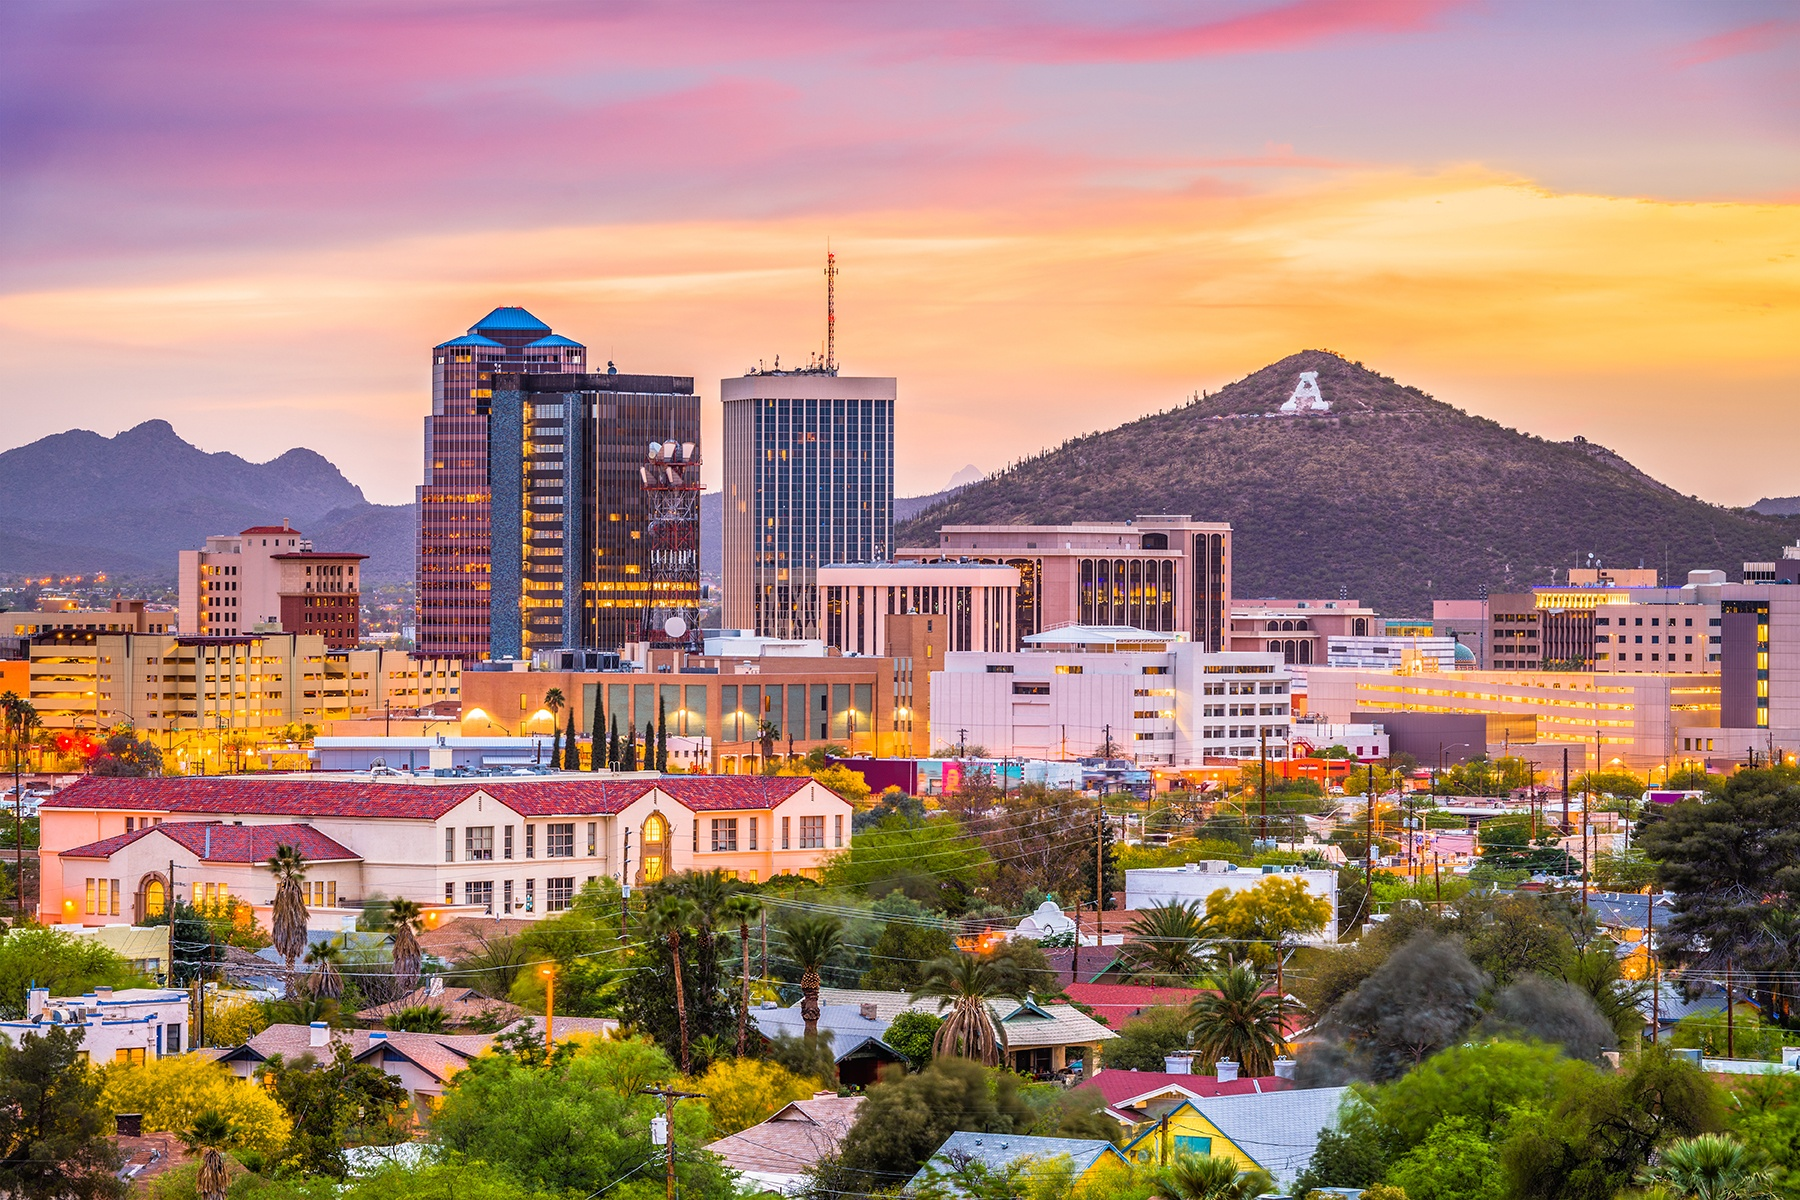 Tucson, Arizona is a great destination for RVers who love outdoor adventure and Mexican cuisine